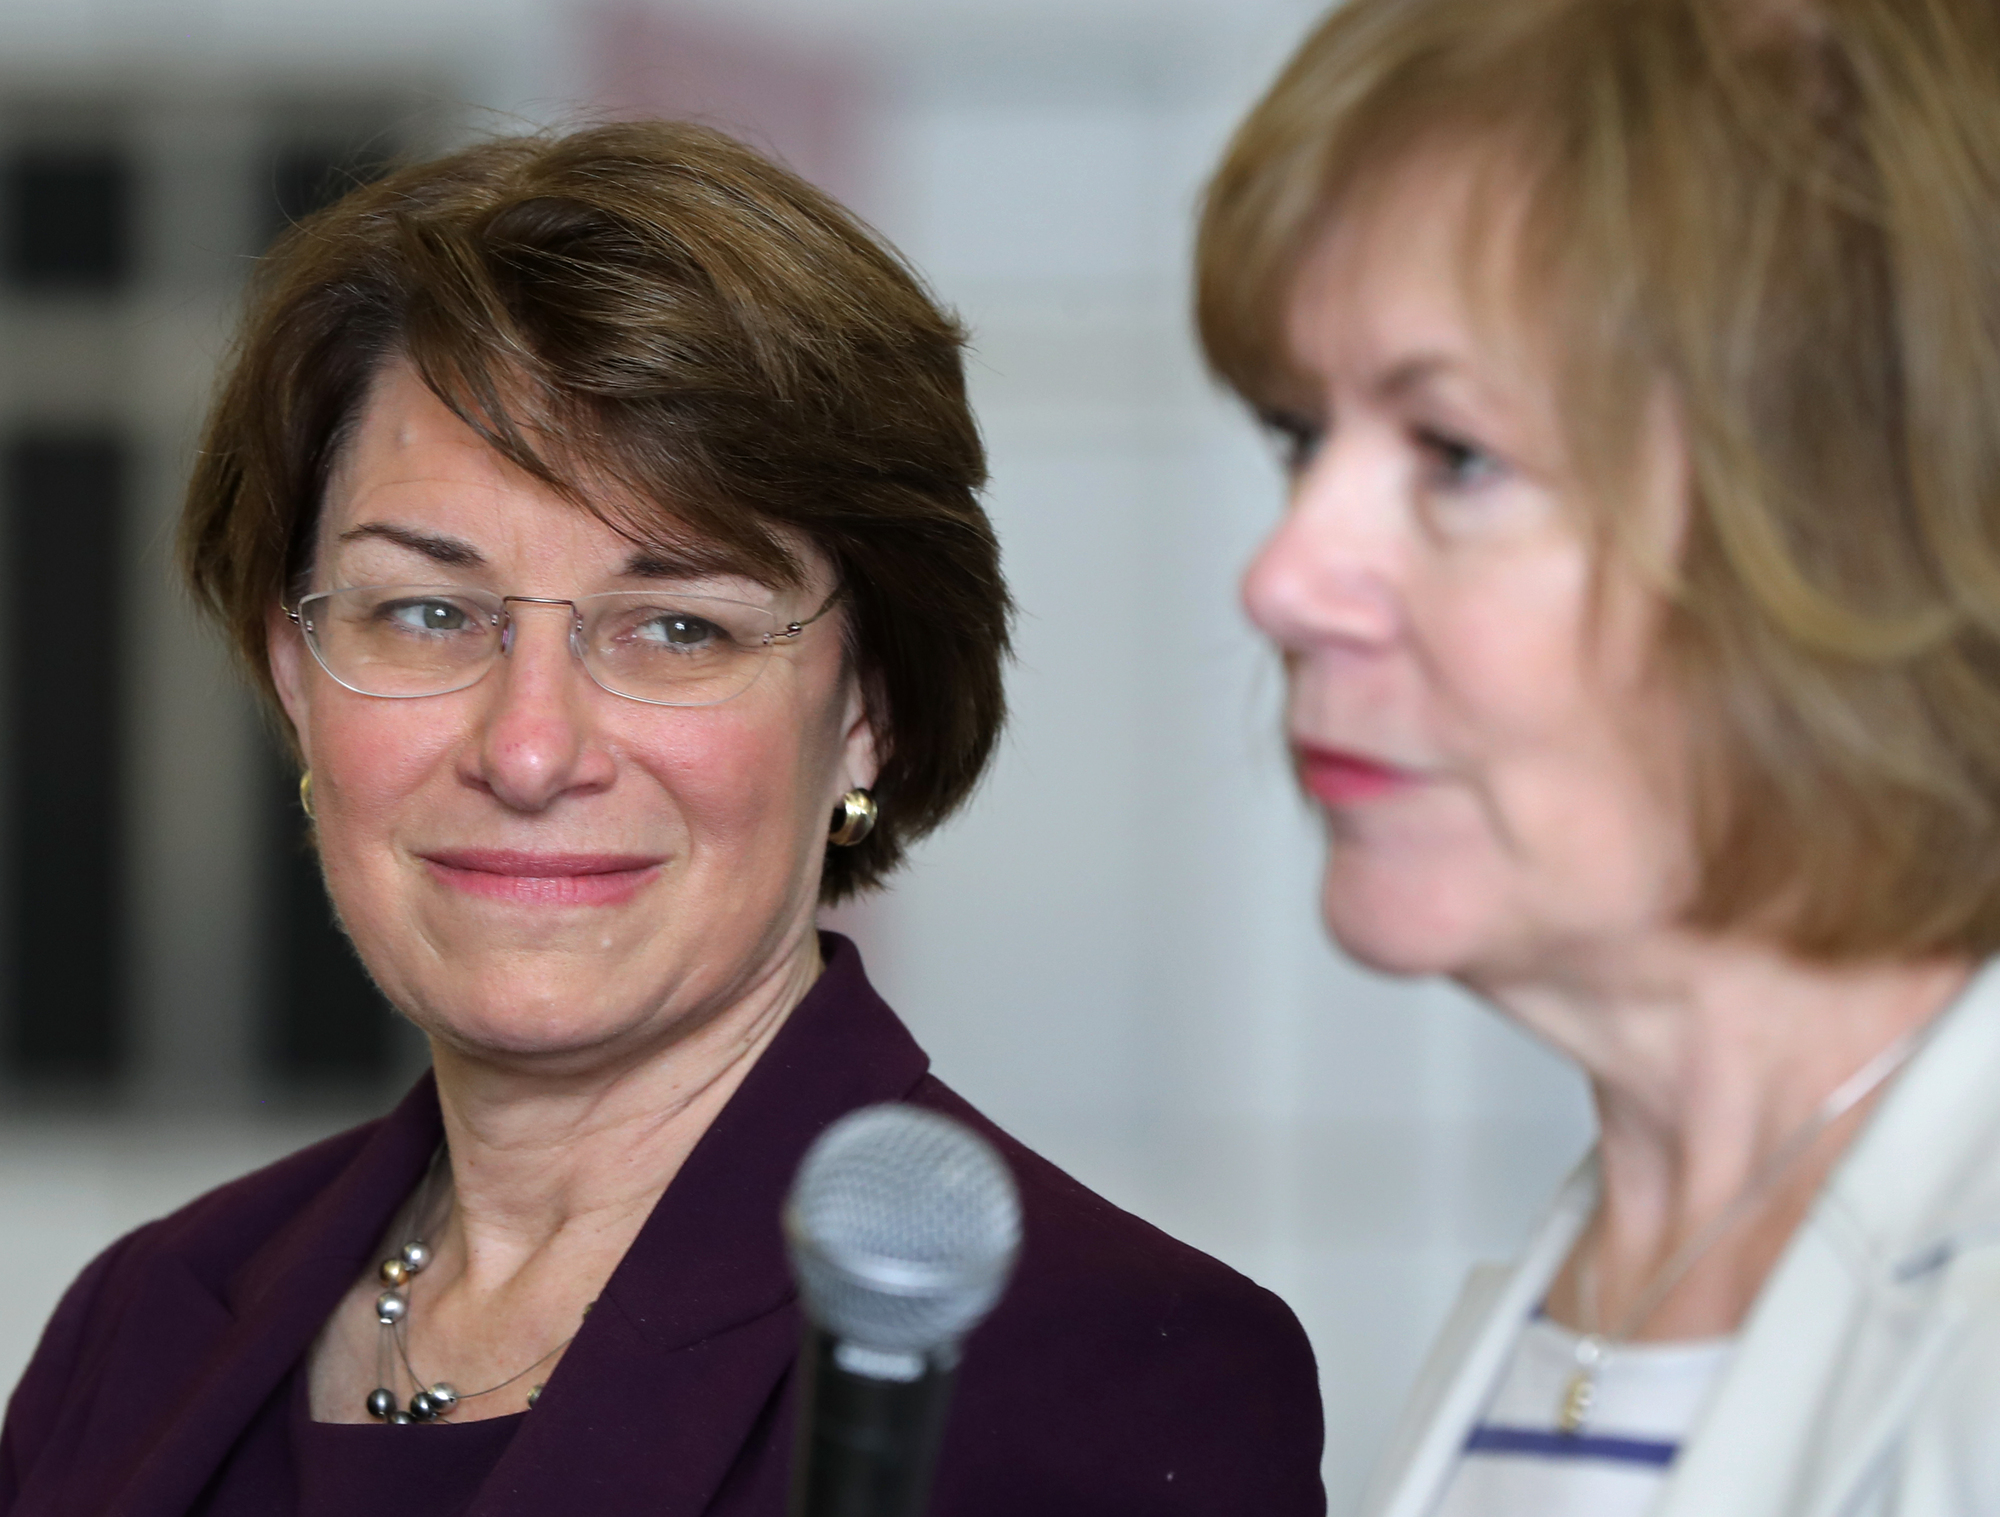 CURRENT MINN. SEN. AMY KLOBUCHAR (D) WILL BE JOINED BY CURRENT MINN. LT. GOV. TINA SMITH (D), TAPPED BY MINN. GOV. MARK DAYTON TO REPLACE CURRENT SEN. AL FRANKEN, WHO IS RESIGNING.